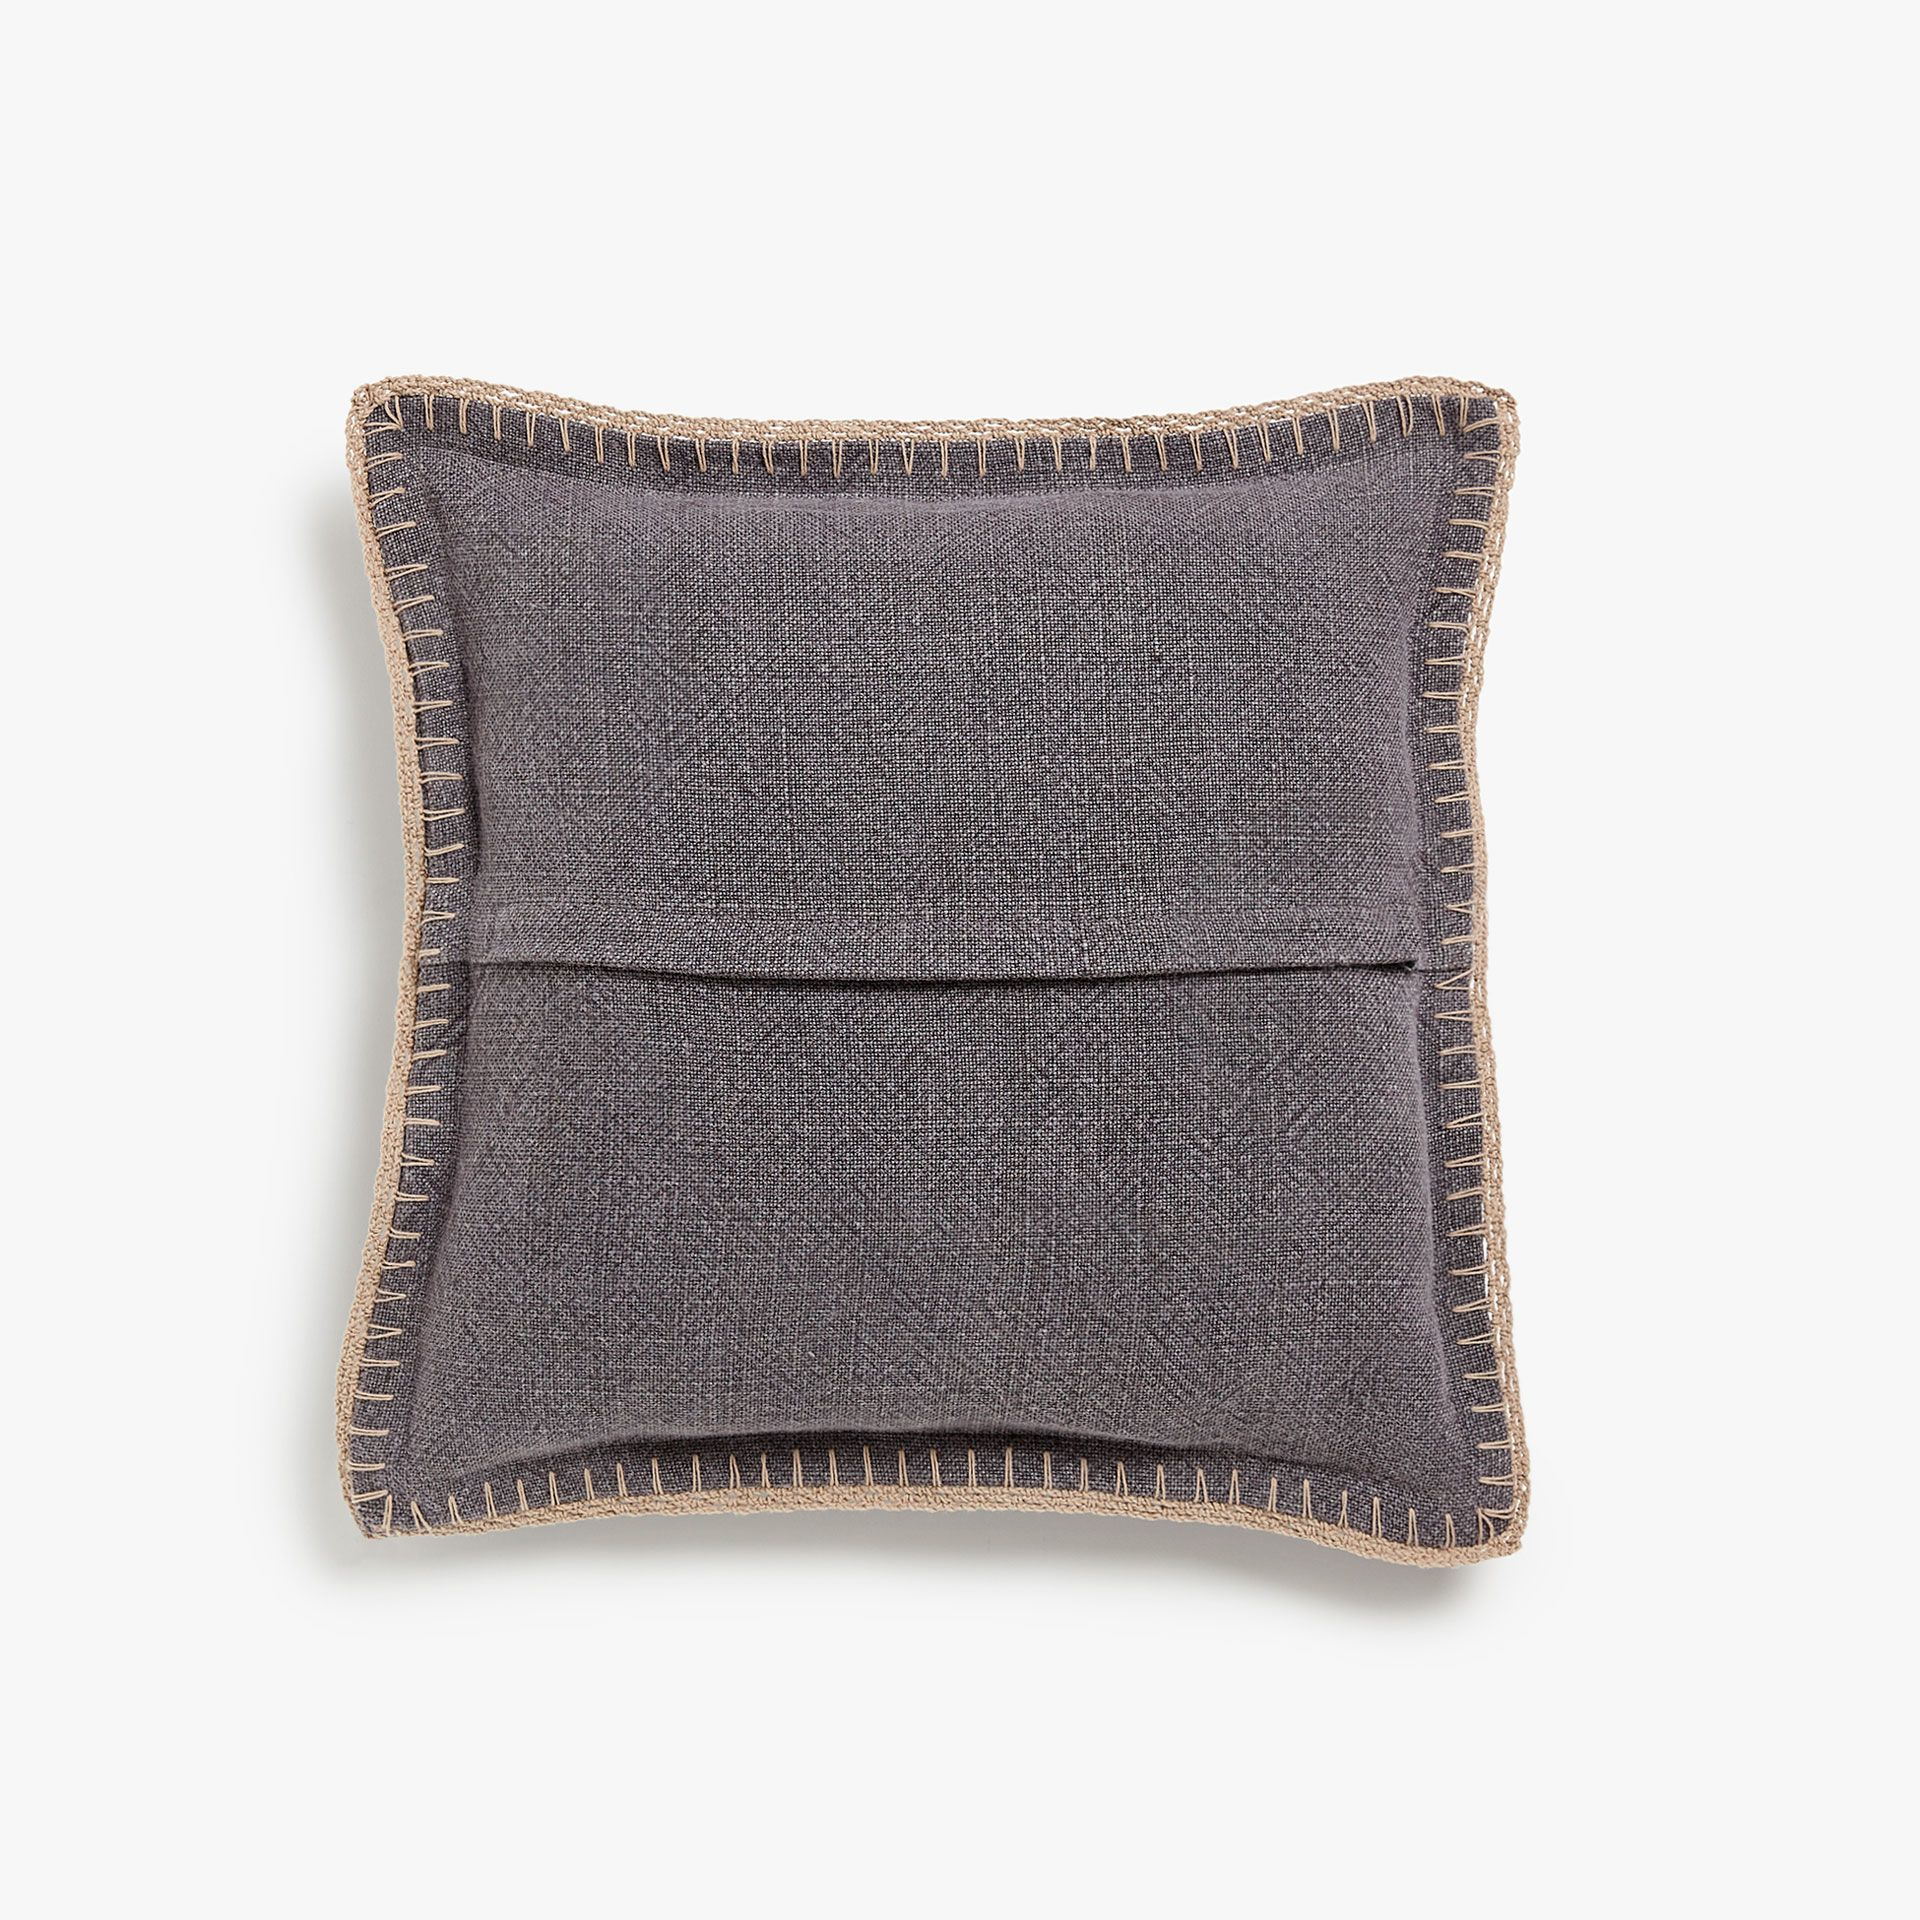 Coarse linen cushion cover with crochet border crochet borders and